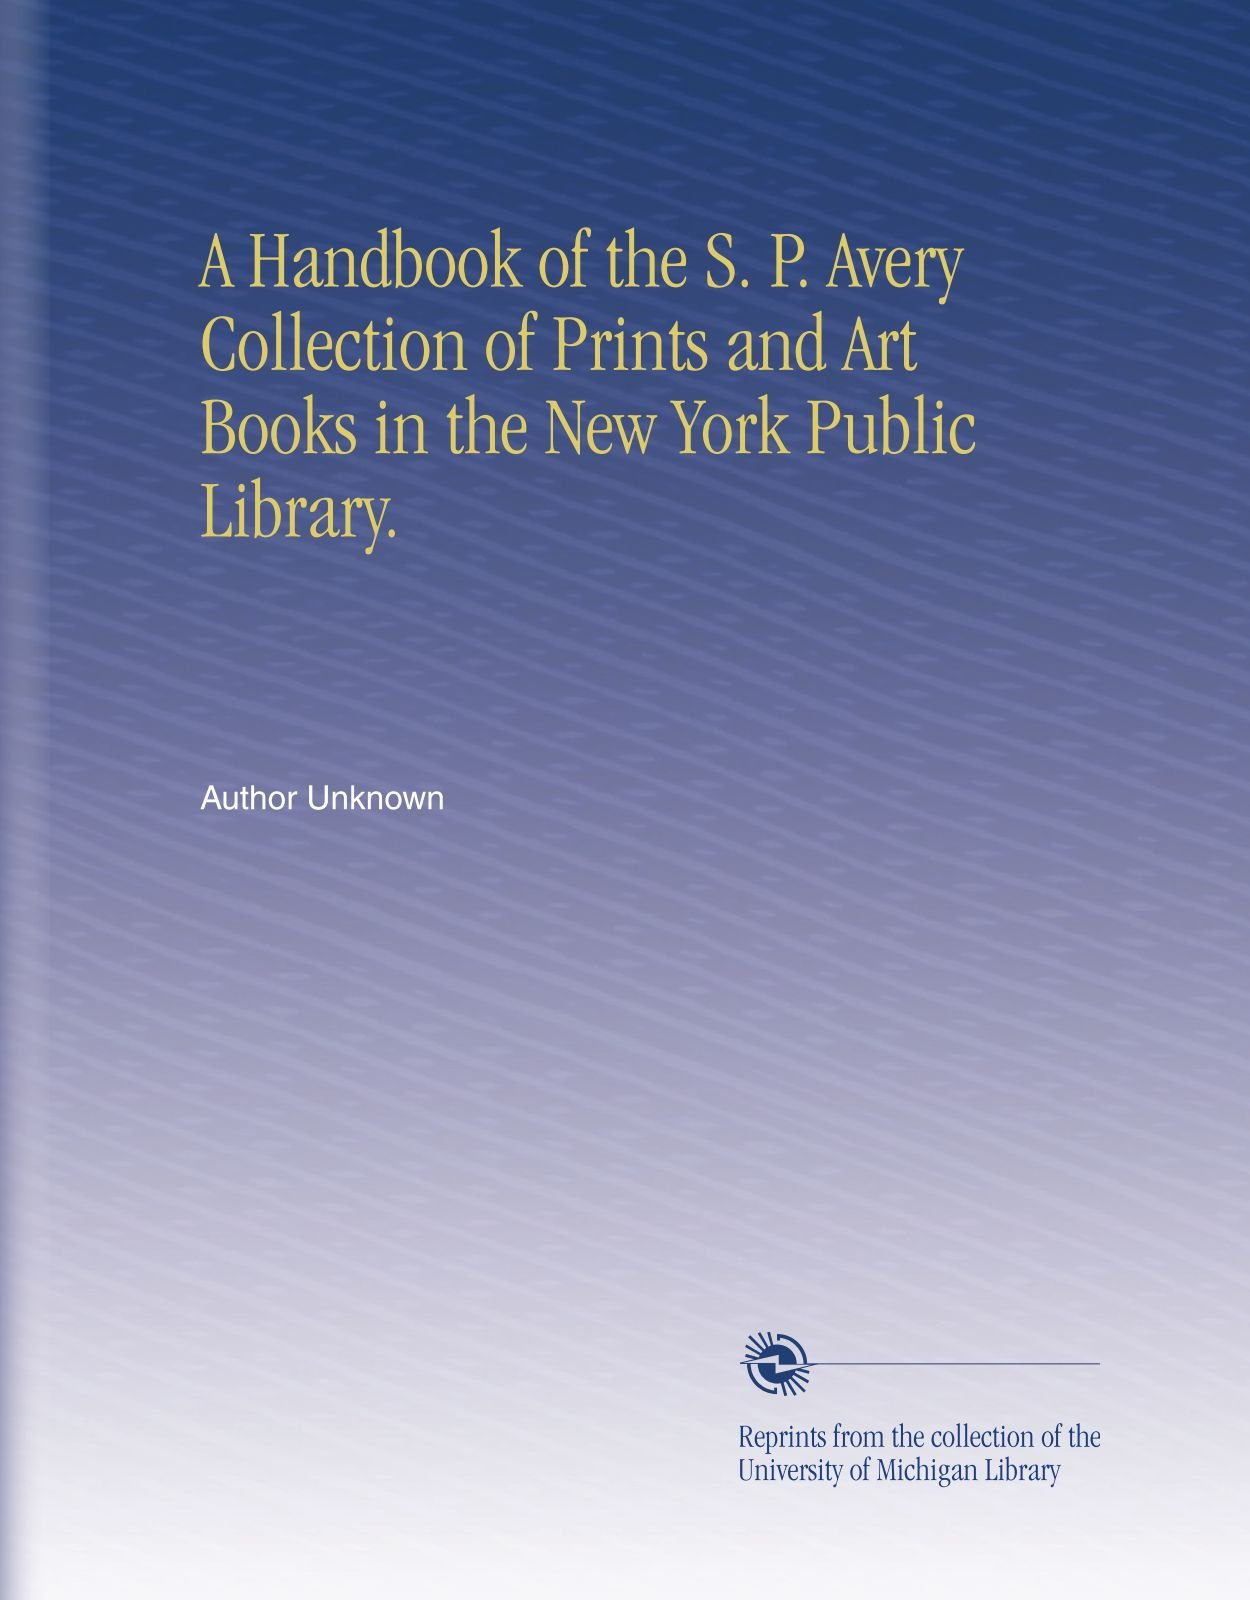 Read Online A Handbook of the S. P. Avery Collection of Prints and Art Books in the New York Public Library. pdf